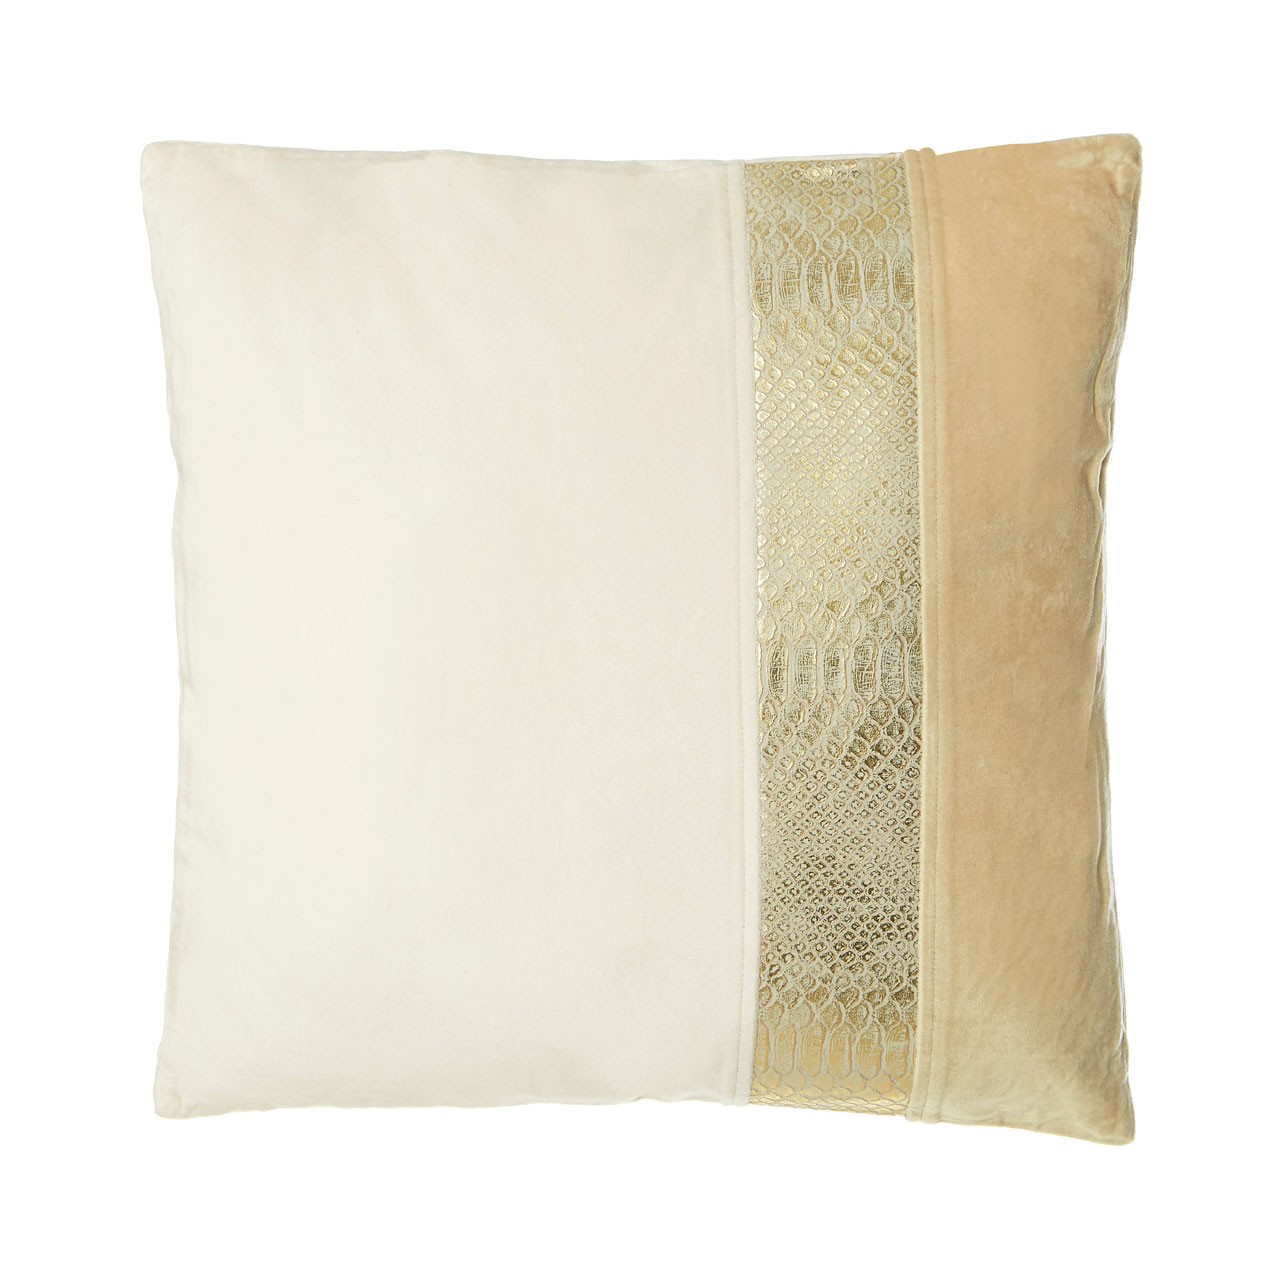 Prime Furnishing Kensington Townhouse Cushion, Velvet, Cream